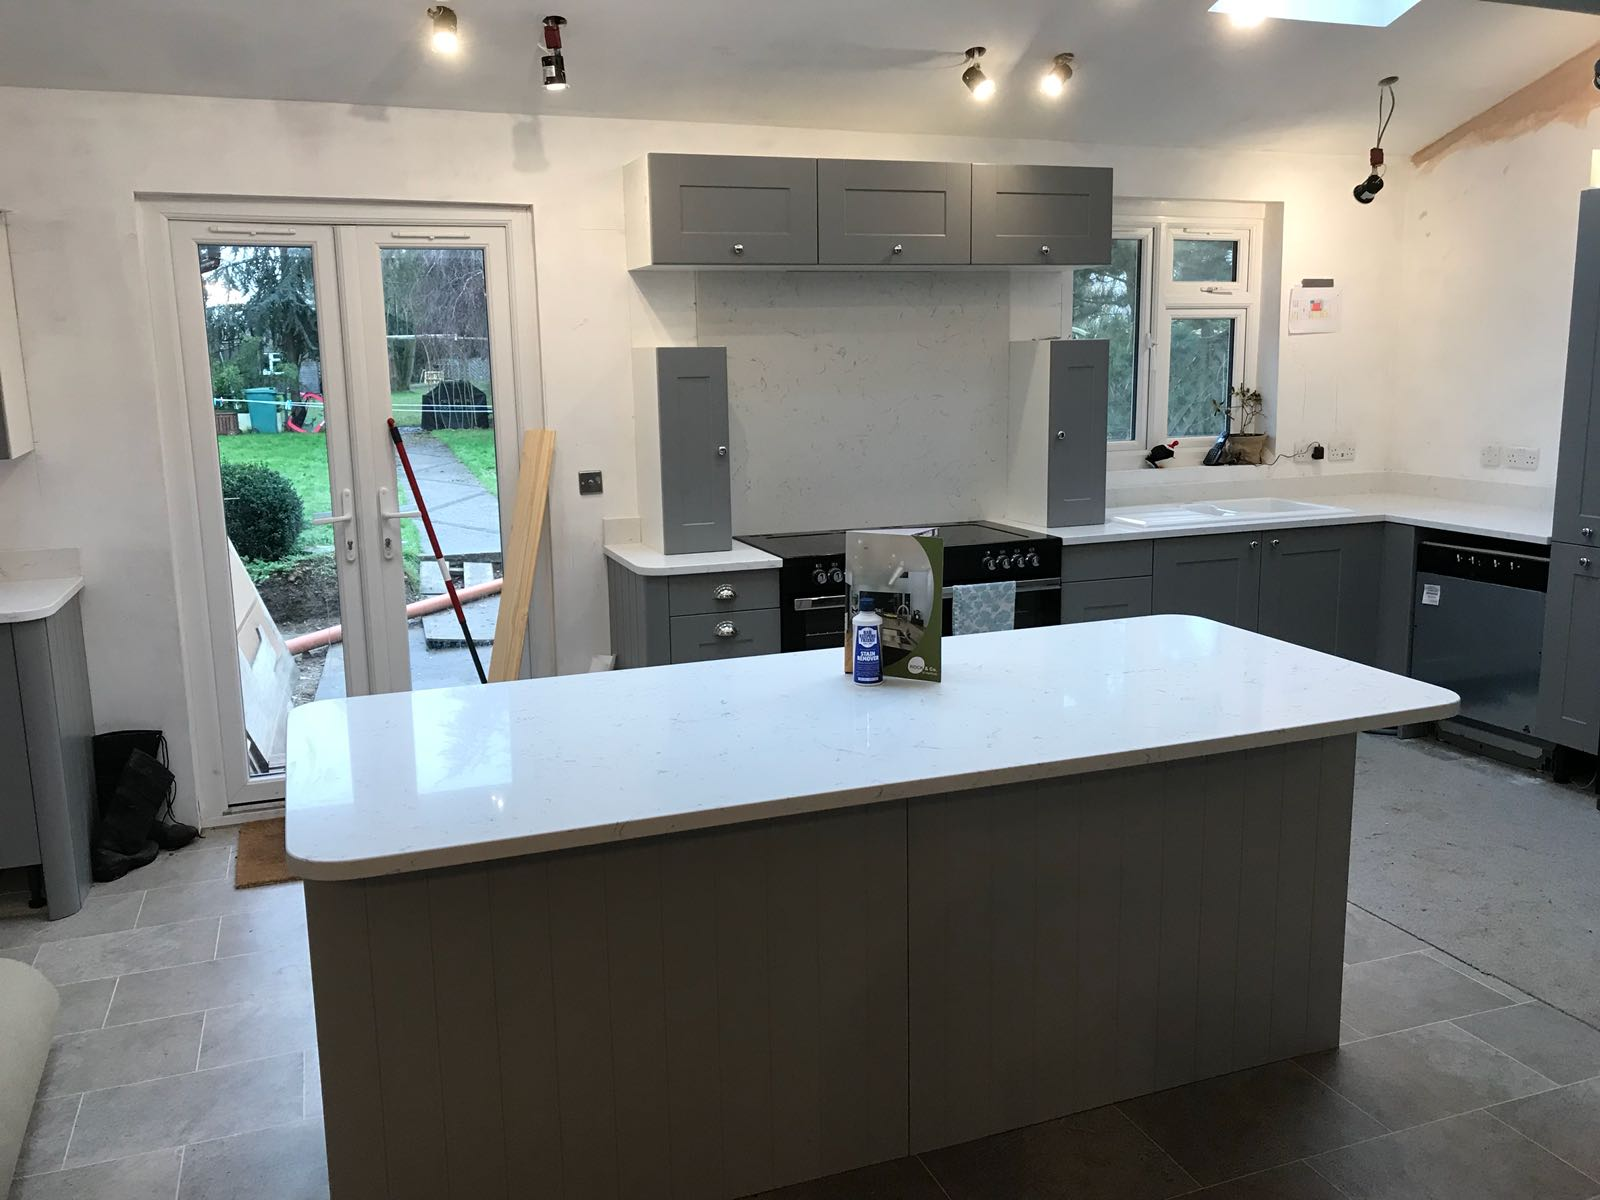 Kitchen of the week… Located in Little Hallingbury, Herts, showcasing the Carrera 30mm